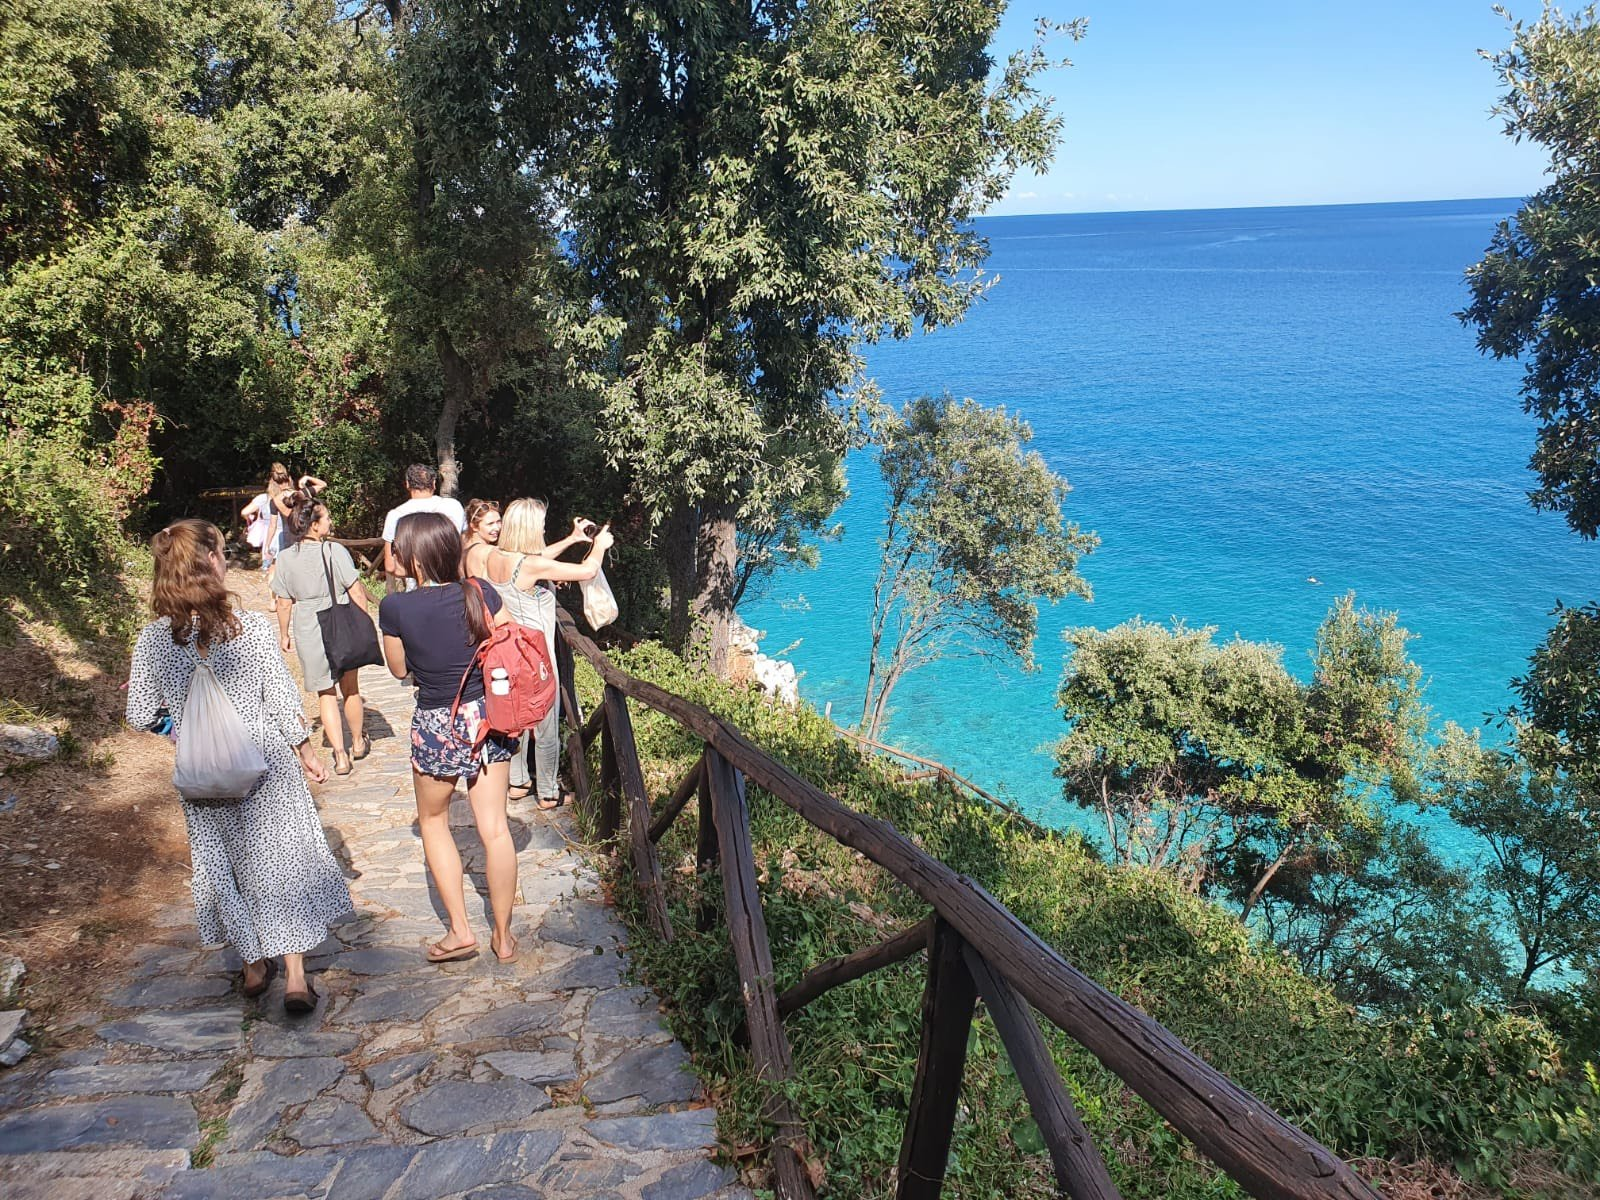 Beach excursion with Pelion Homes